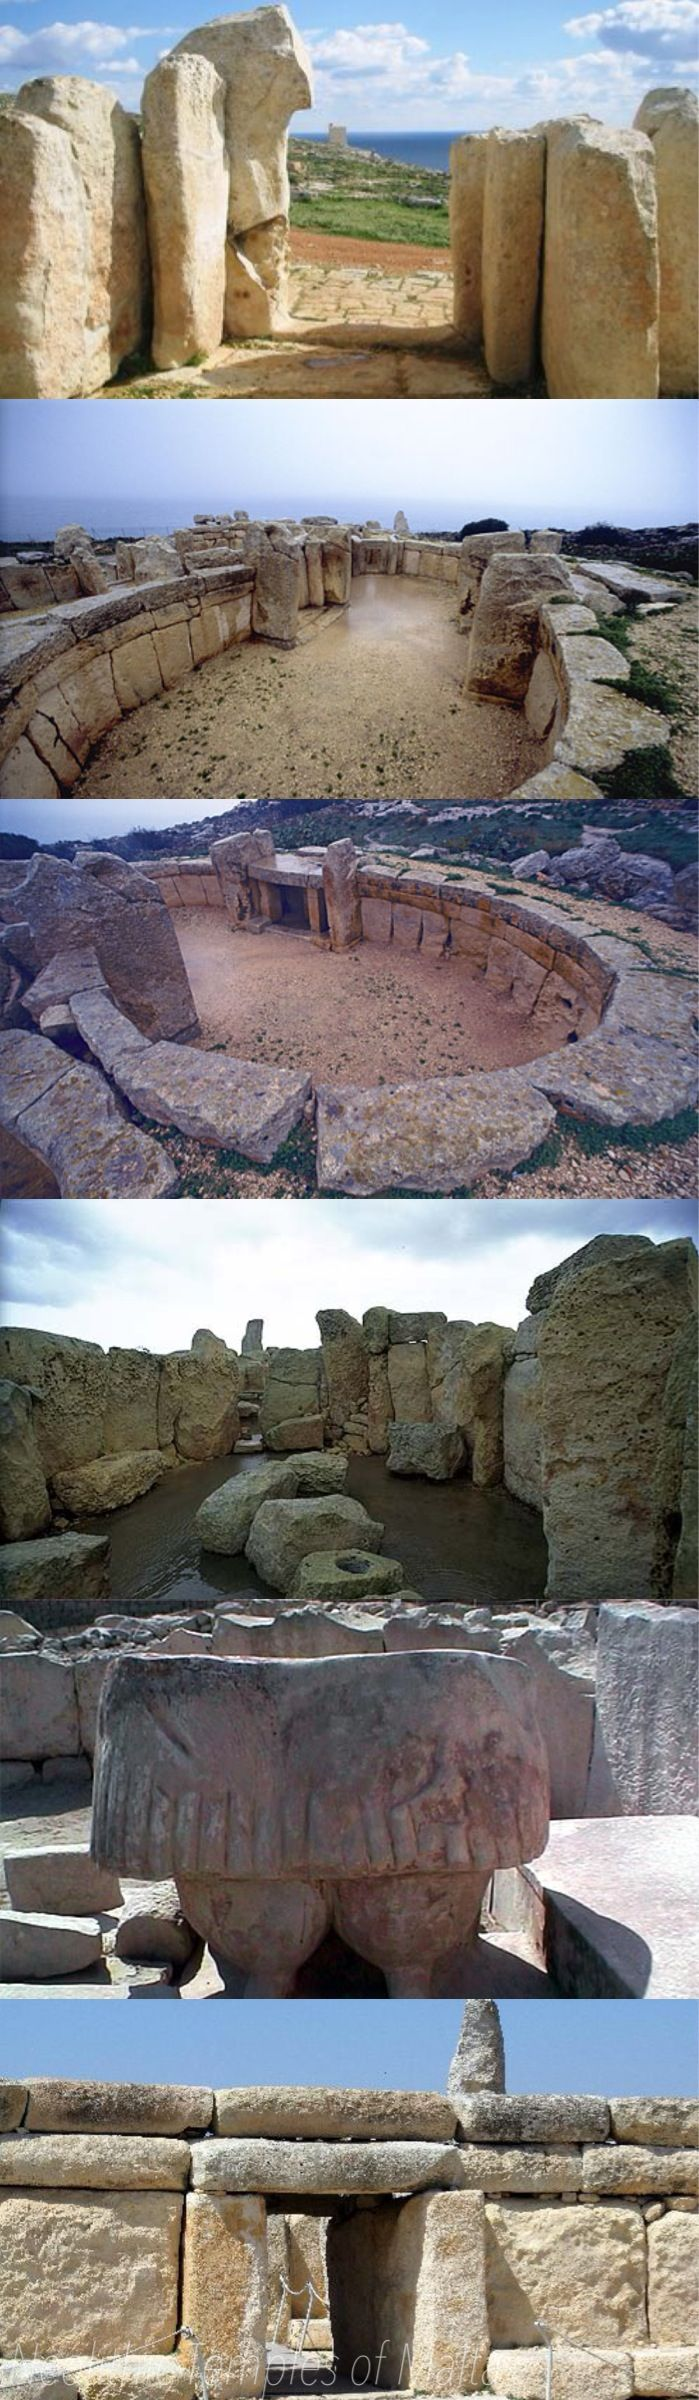 On the islands of Malta and nearby Gozo, the remains of 50 temples have been found, with 23 in various states of preservation. No particular pattern emerges from the distribution of these temples and this may be explained by the probability that numerous temples were destroyed in antiquity and that others remain to be discovered.